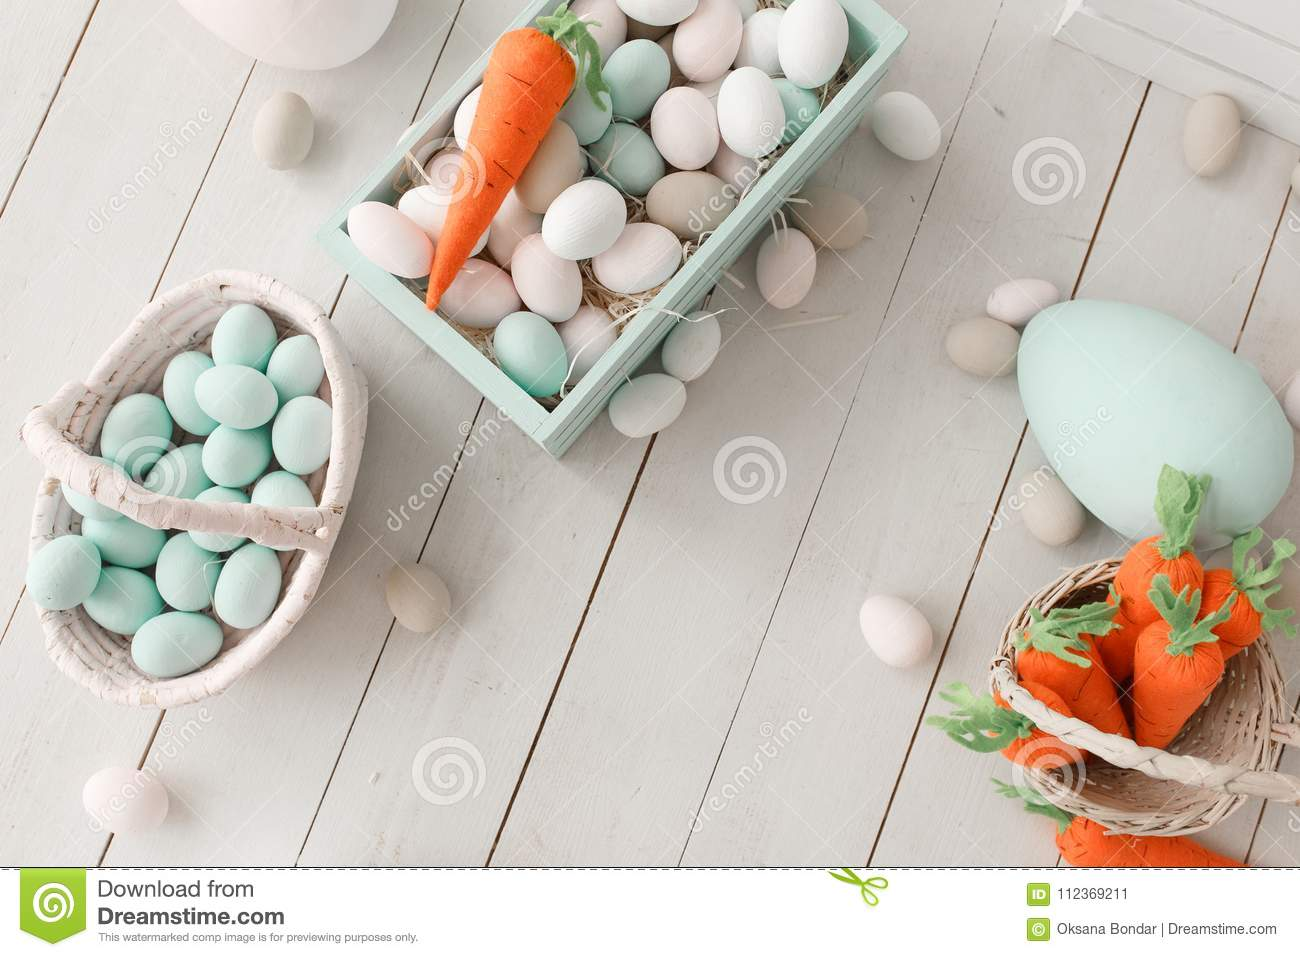 Easter background with colorful eggs and yellow orange carrots over white wood. Top view with copy space